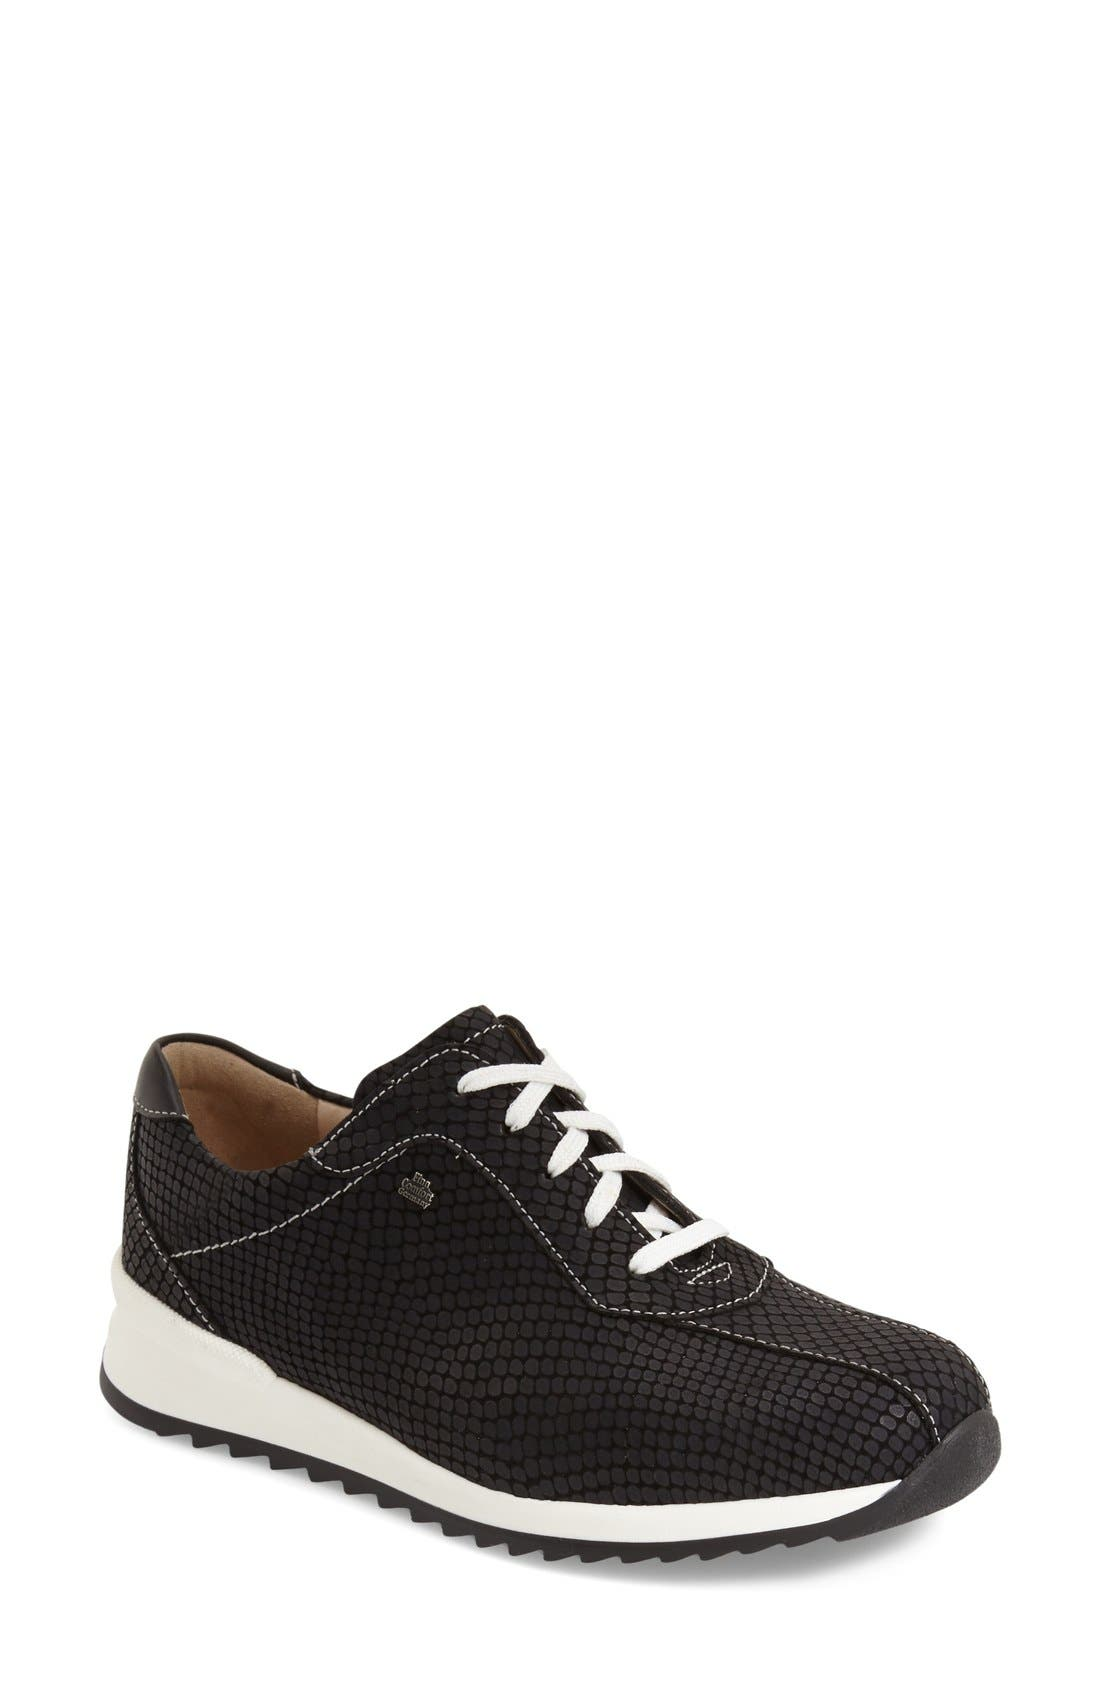 Alternate Image 1 Selected - Finn Comfort 'Sarnia' Sneaker (Women)